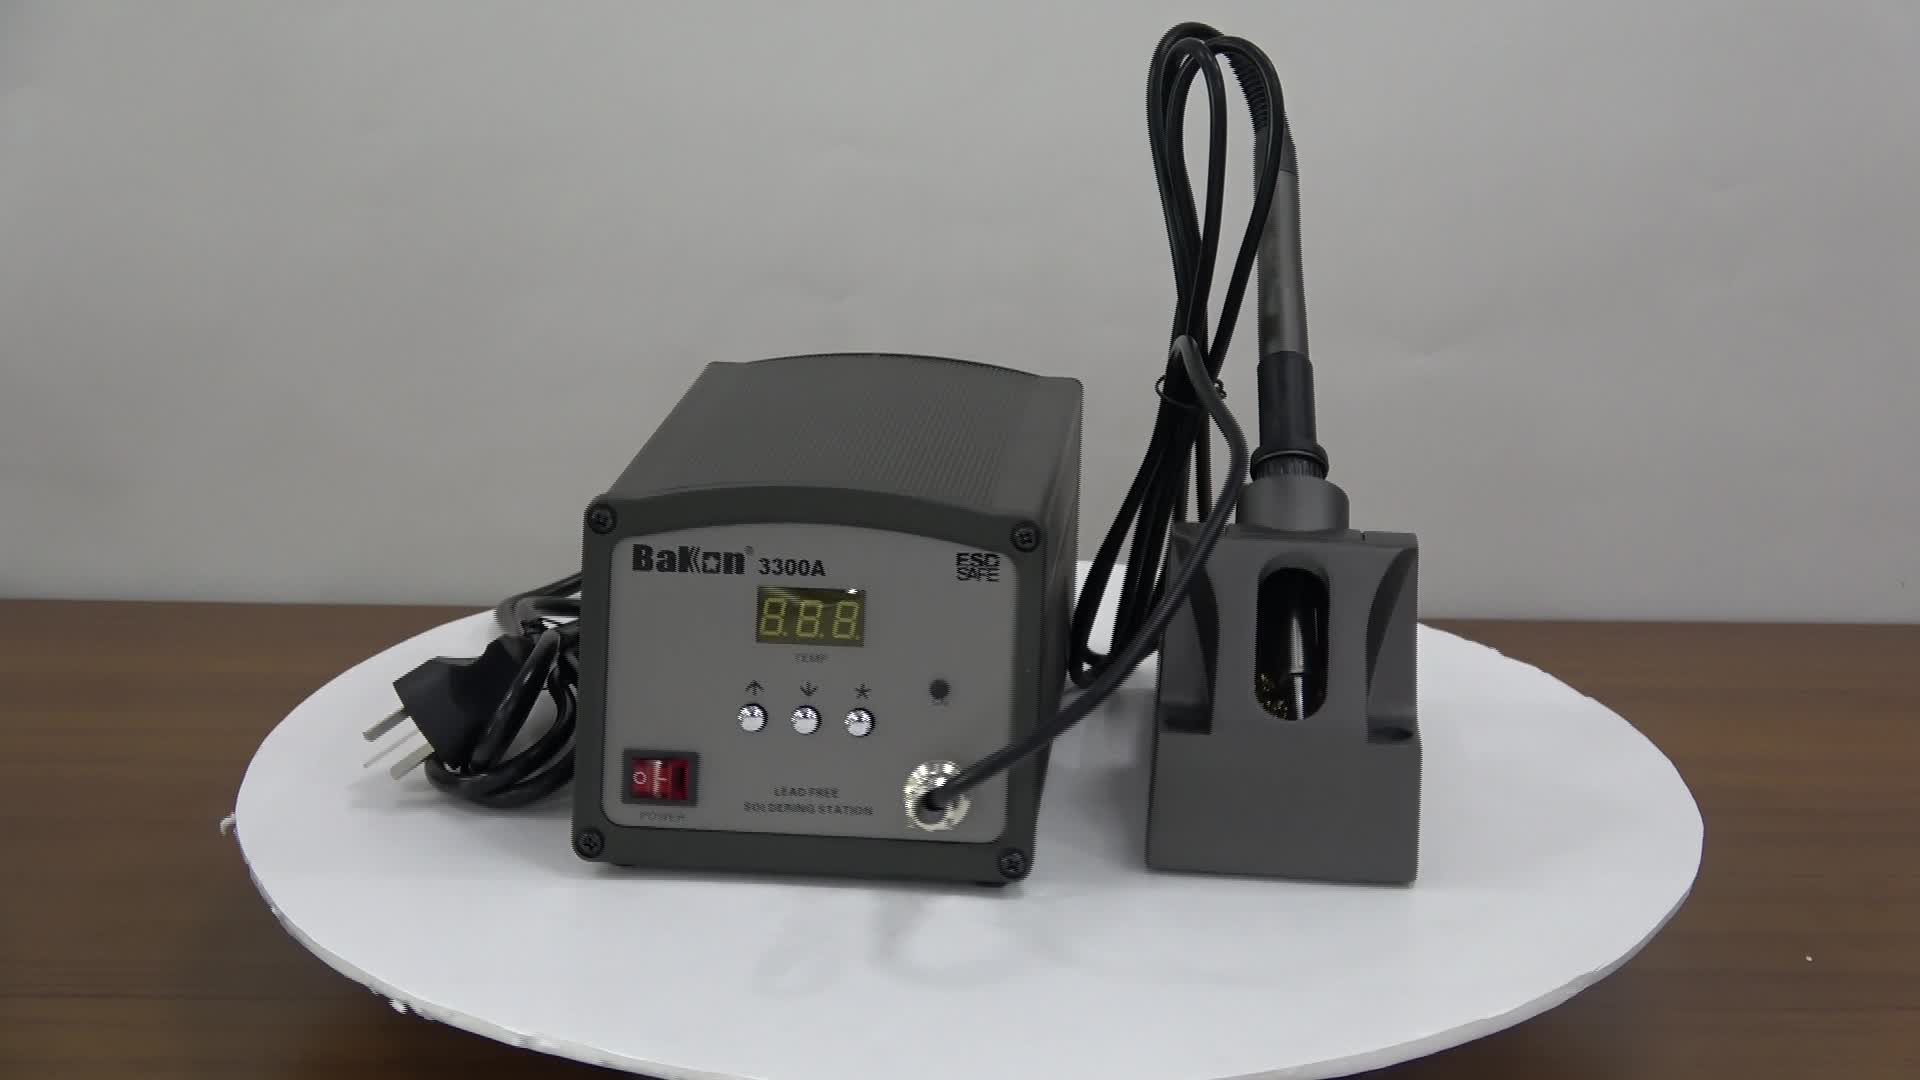 High frequency inverter system build in lead free soldering iron station BK3300A